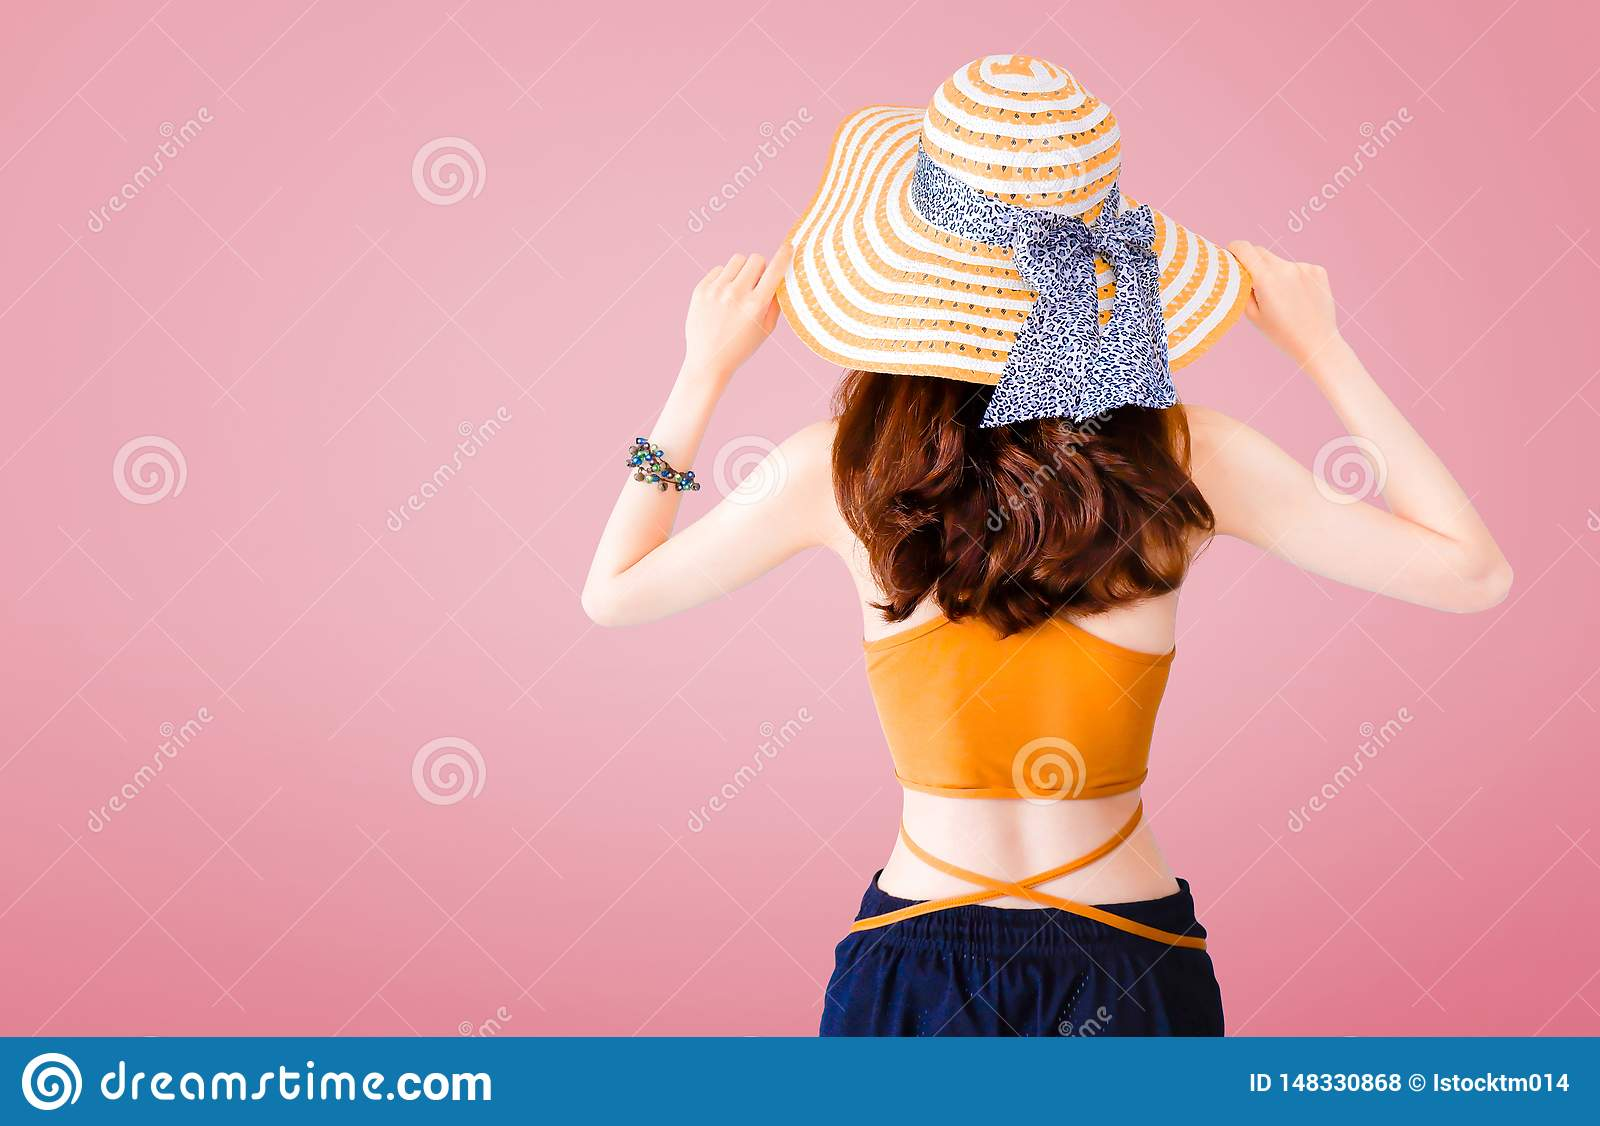 Beautiful woman wearing a straw hat and sexy suit on pink background with Summer concept